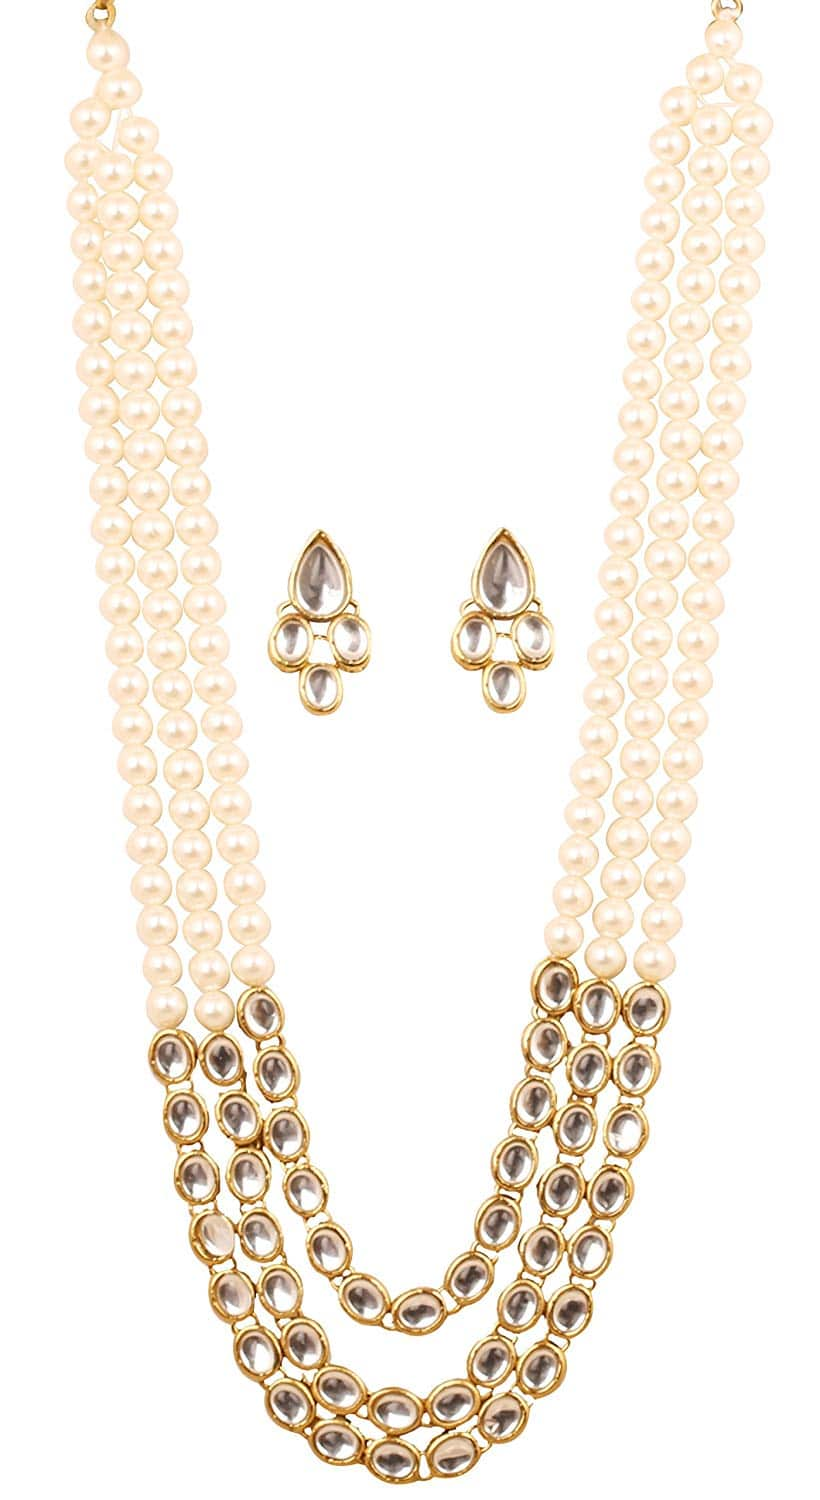 Triple line Faux Pearls Alloy material jewellery